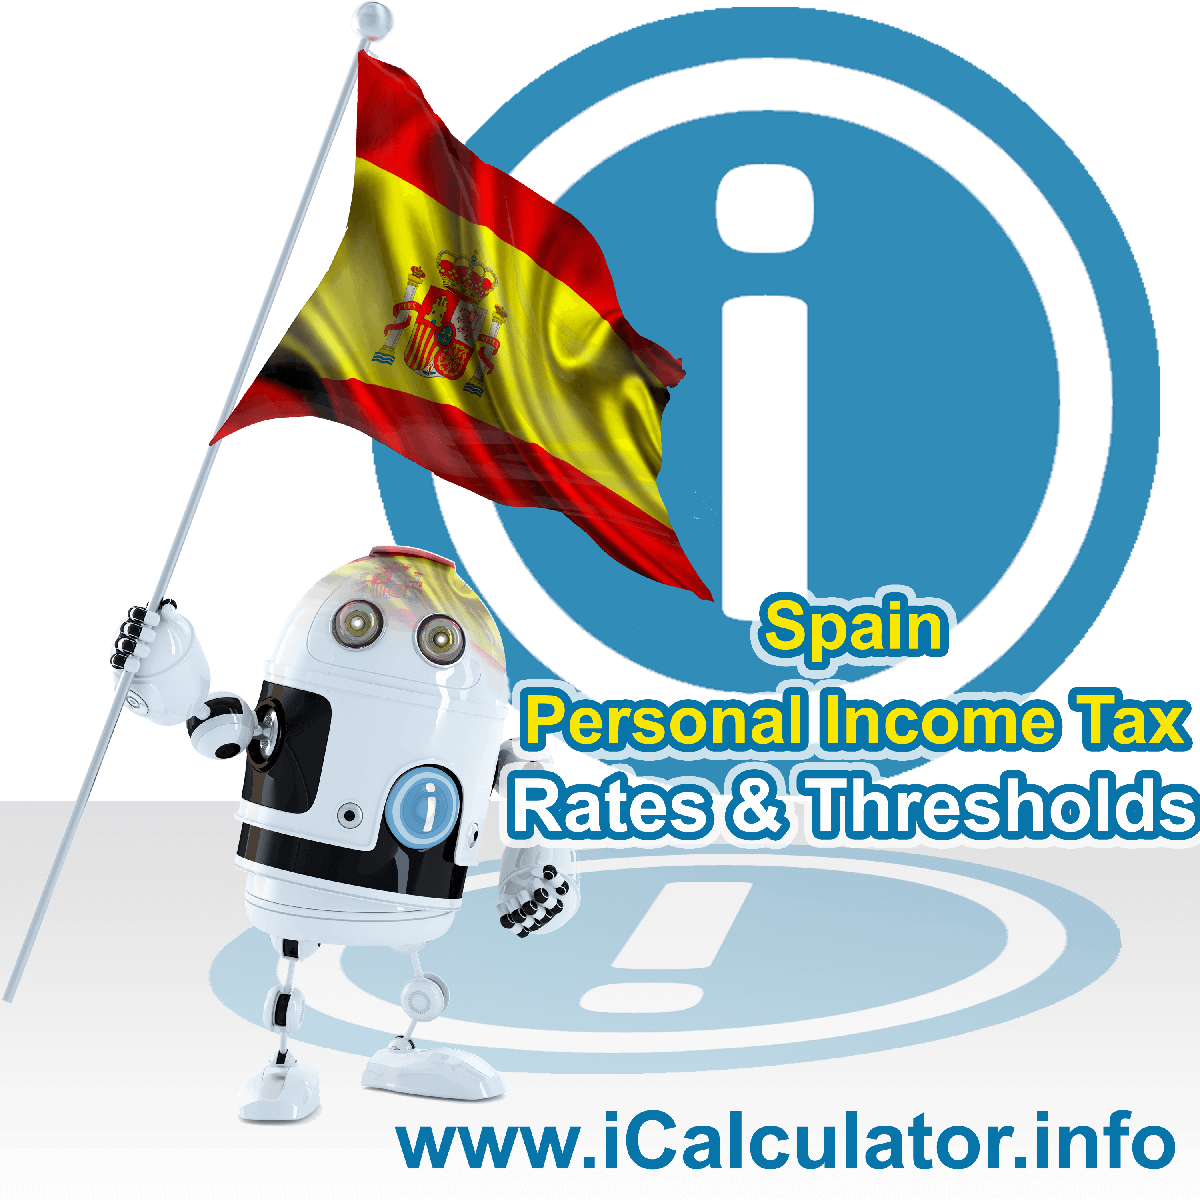 Spain Salary Calculator. This image shows the Spainese flag and information relating to the tax formula for the Spain Tax Calculator